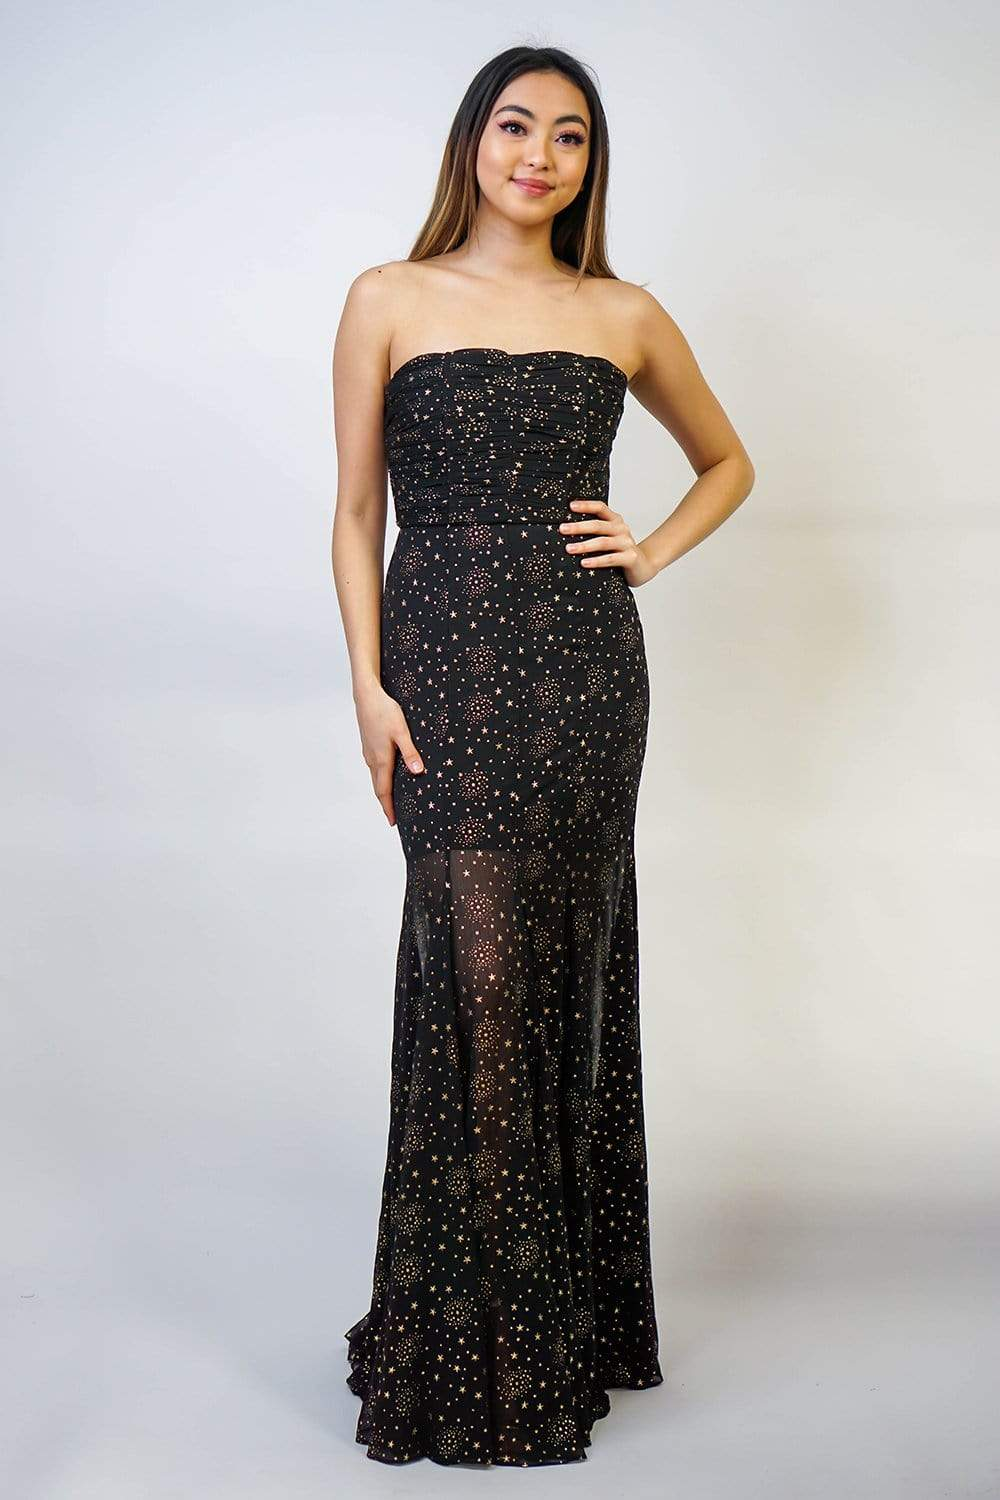 GOWN Strapless Starry Night Gown - Chloe Dao